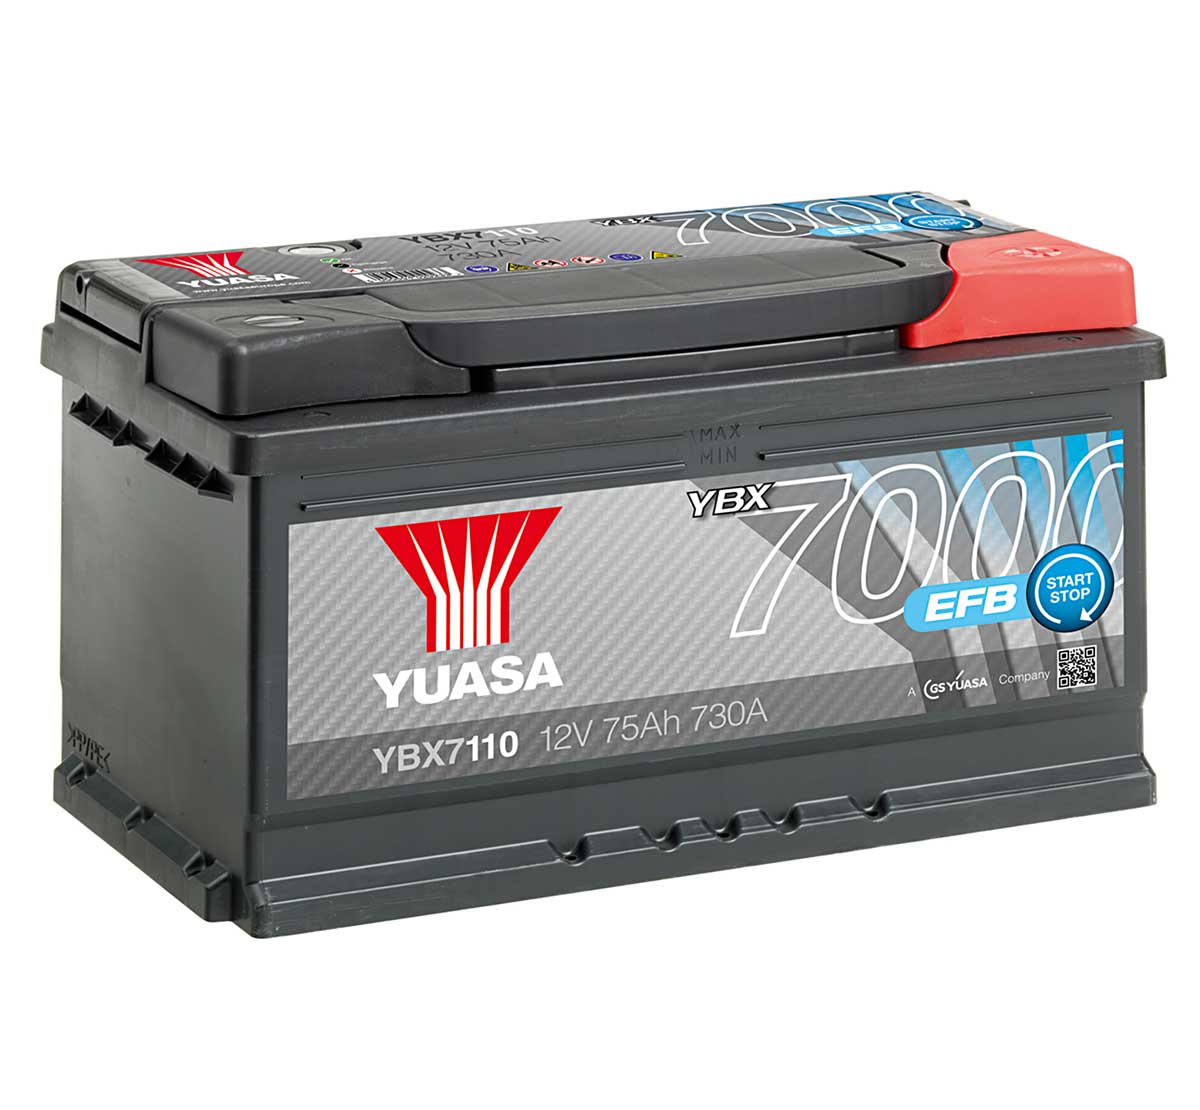 Yuasa YBX7110 12V Stop Start Plus 110 Car Battery